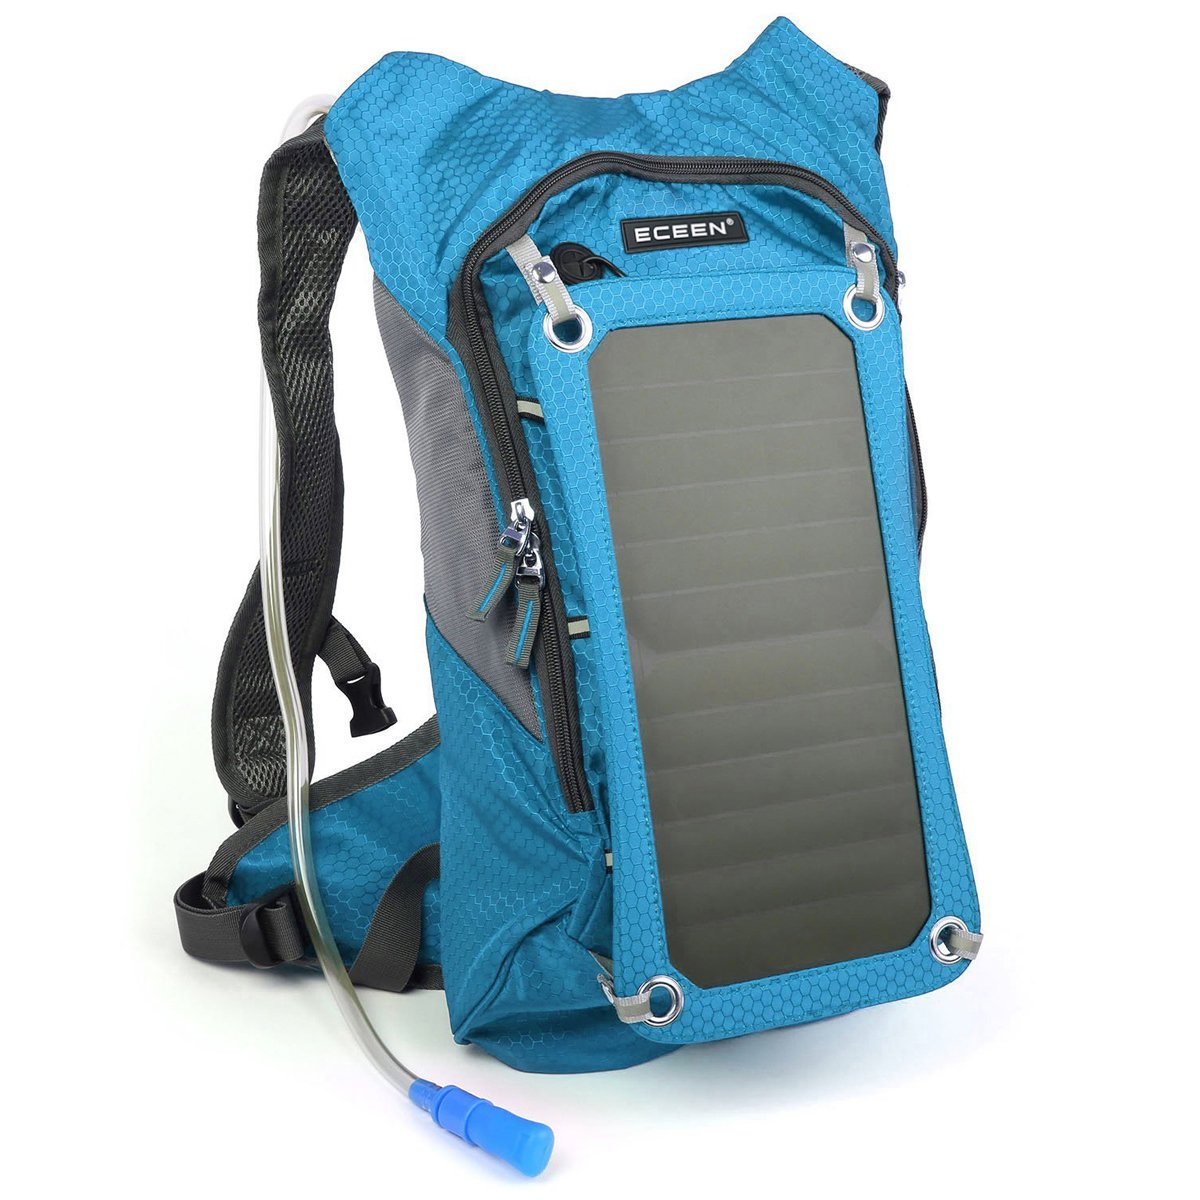 ECEEN Solar Hydration Backpack 7 Watts Solar Phone Charger with 2 Liters Bladder for iPhone Samsung LG Smart Phone Tablet Charging Great for Biking, Hiking, Camping Etc. (No Battery Pack) by ECEEN